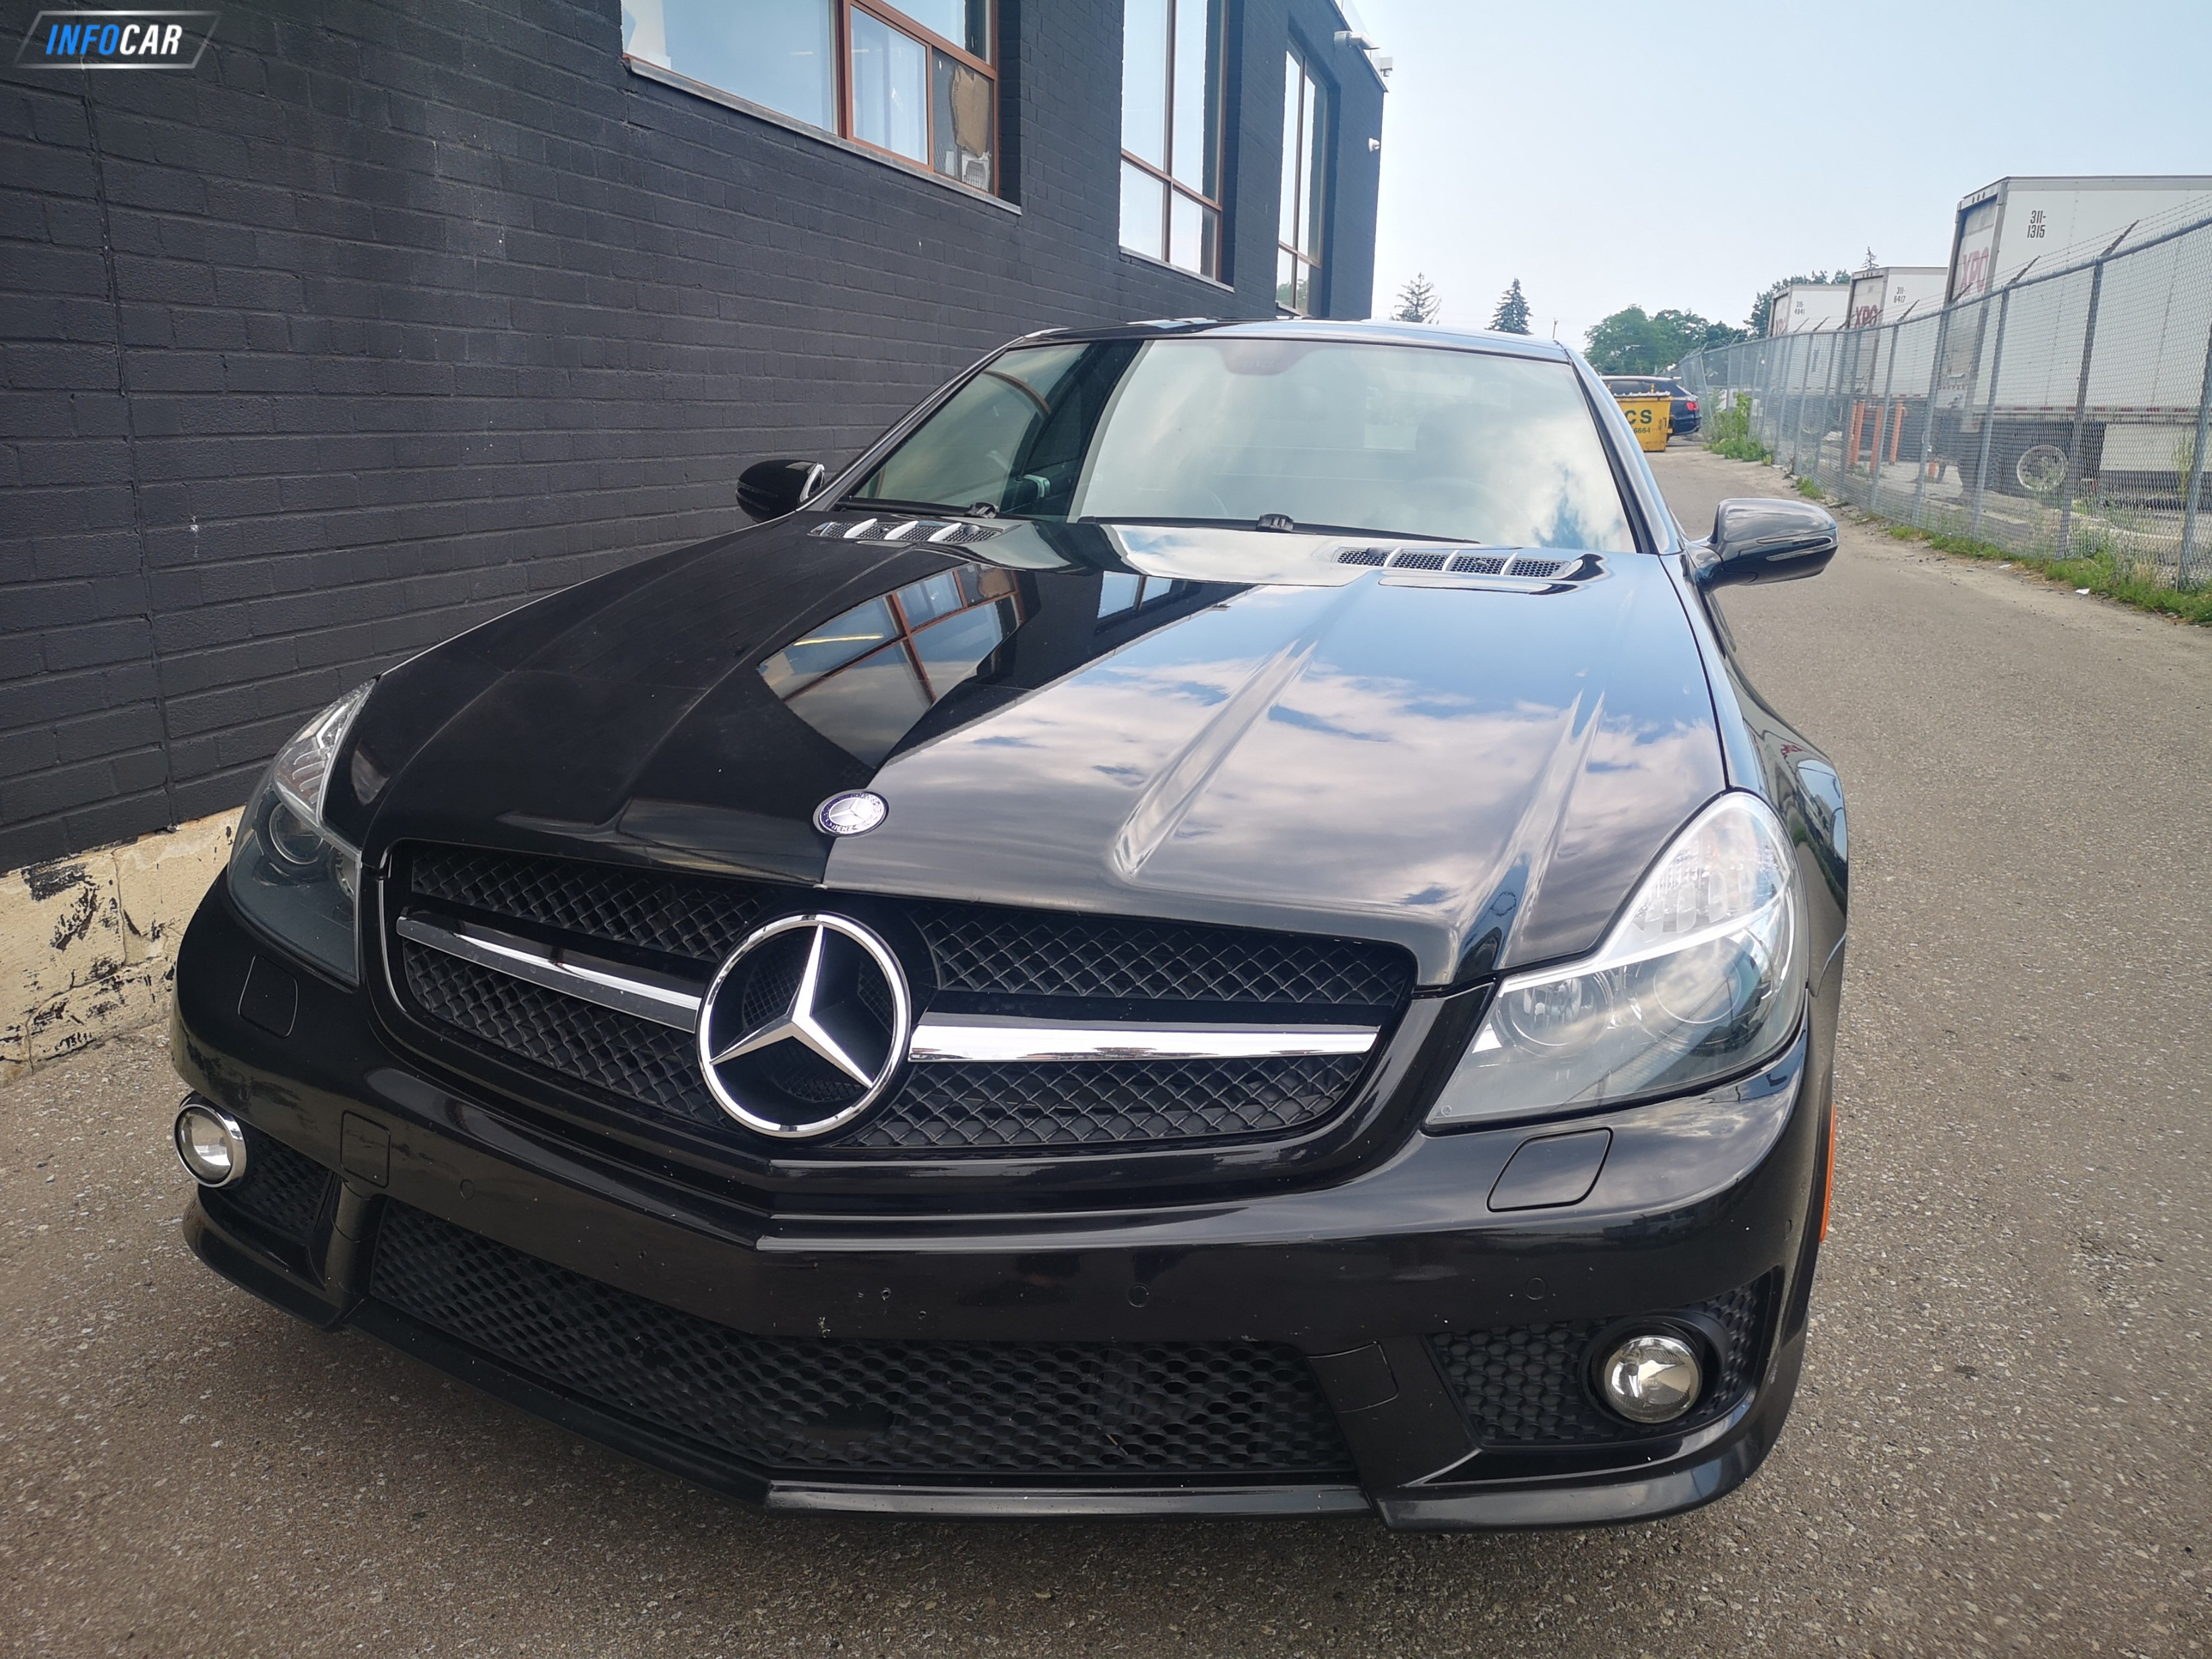 2009 Mercedes-Benz SL-Class 63 AMG  - INFOCAR - Toronto's Most Comprehensive New and Used Auto Trading Platform